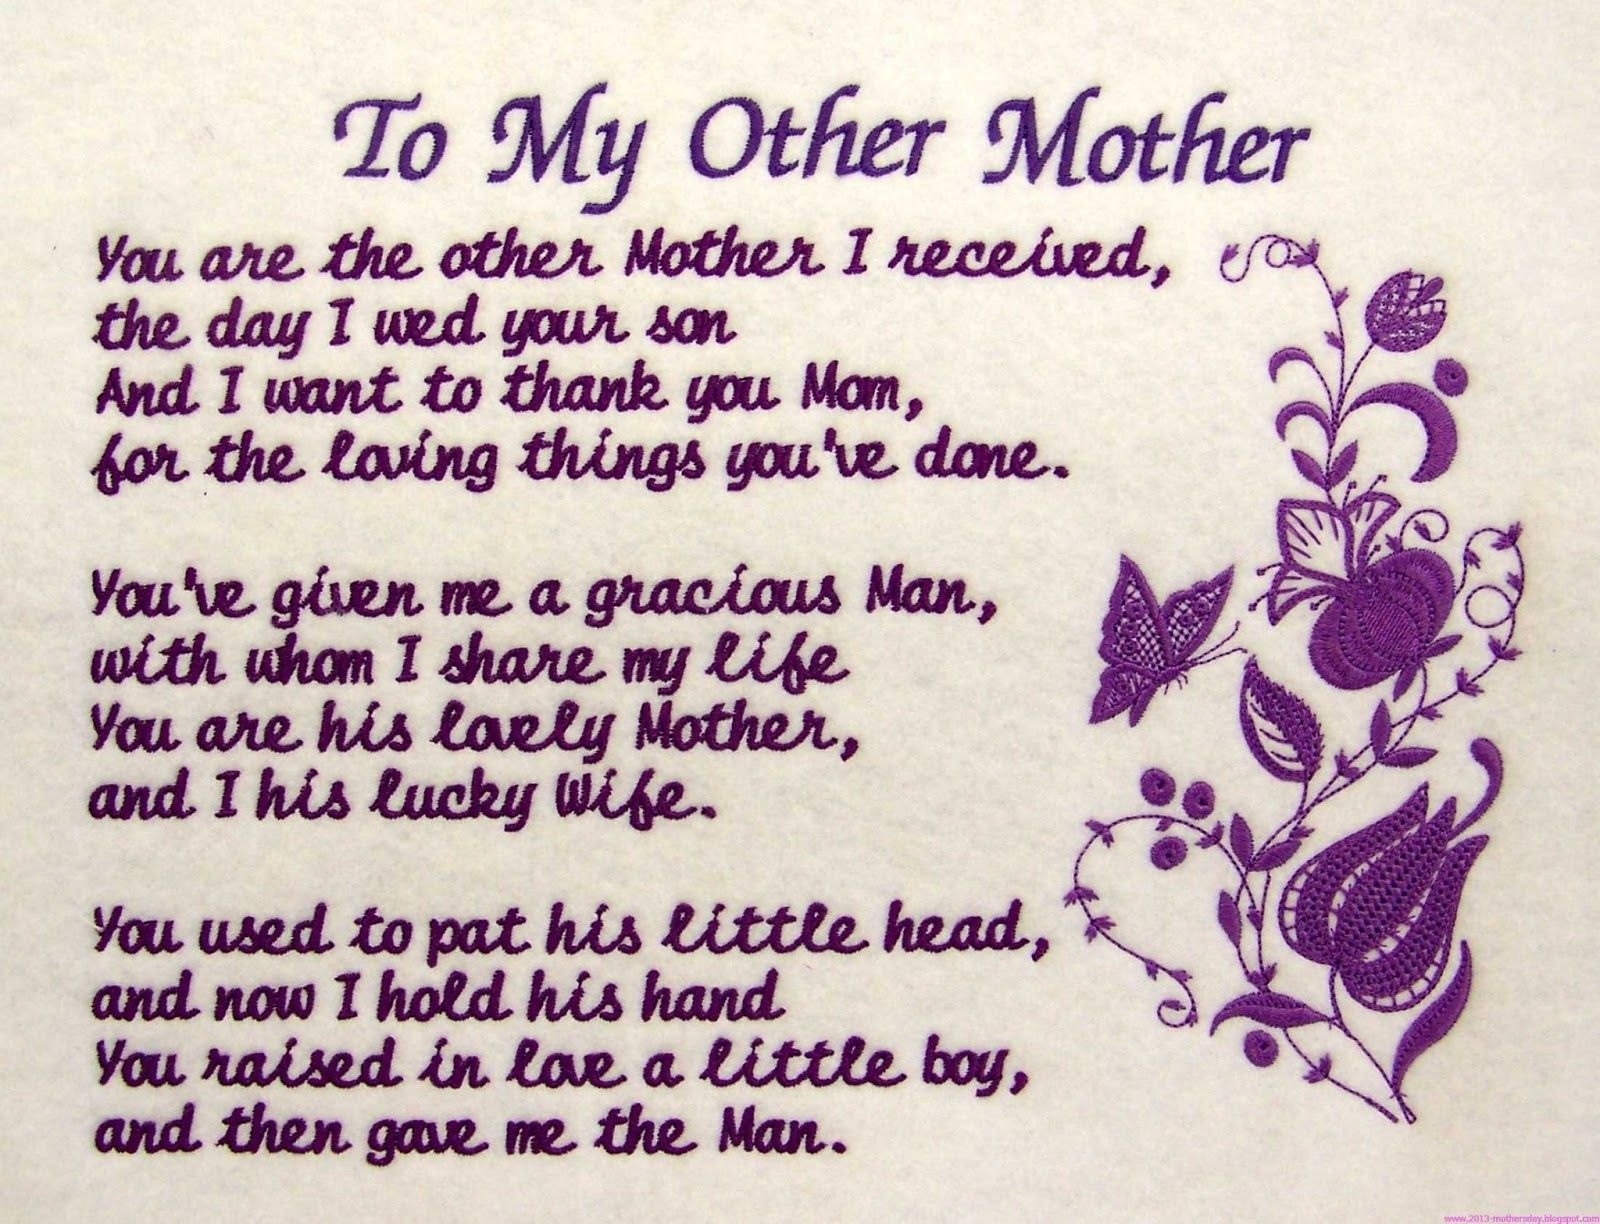 best images about mom s day mothers day quotes 17 best images about mom s day mothers day quotes mothers day cards and mother s day greeting cards